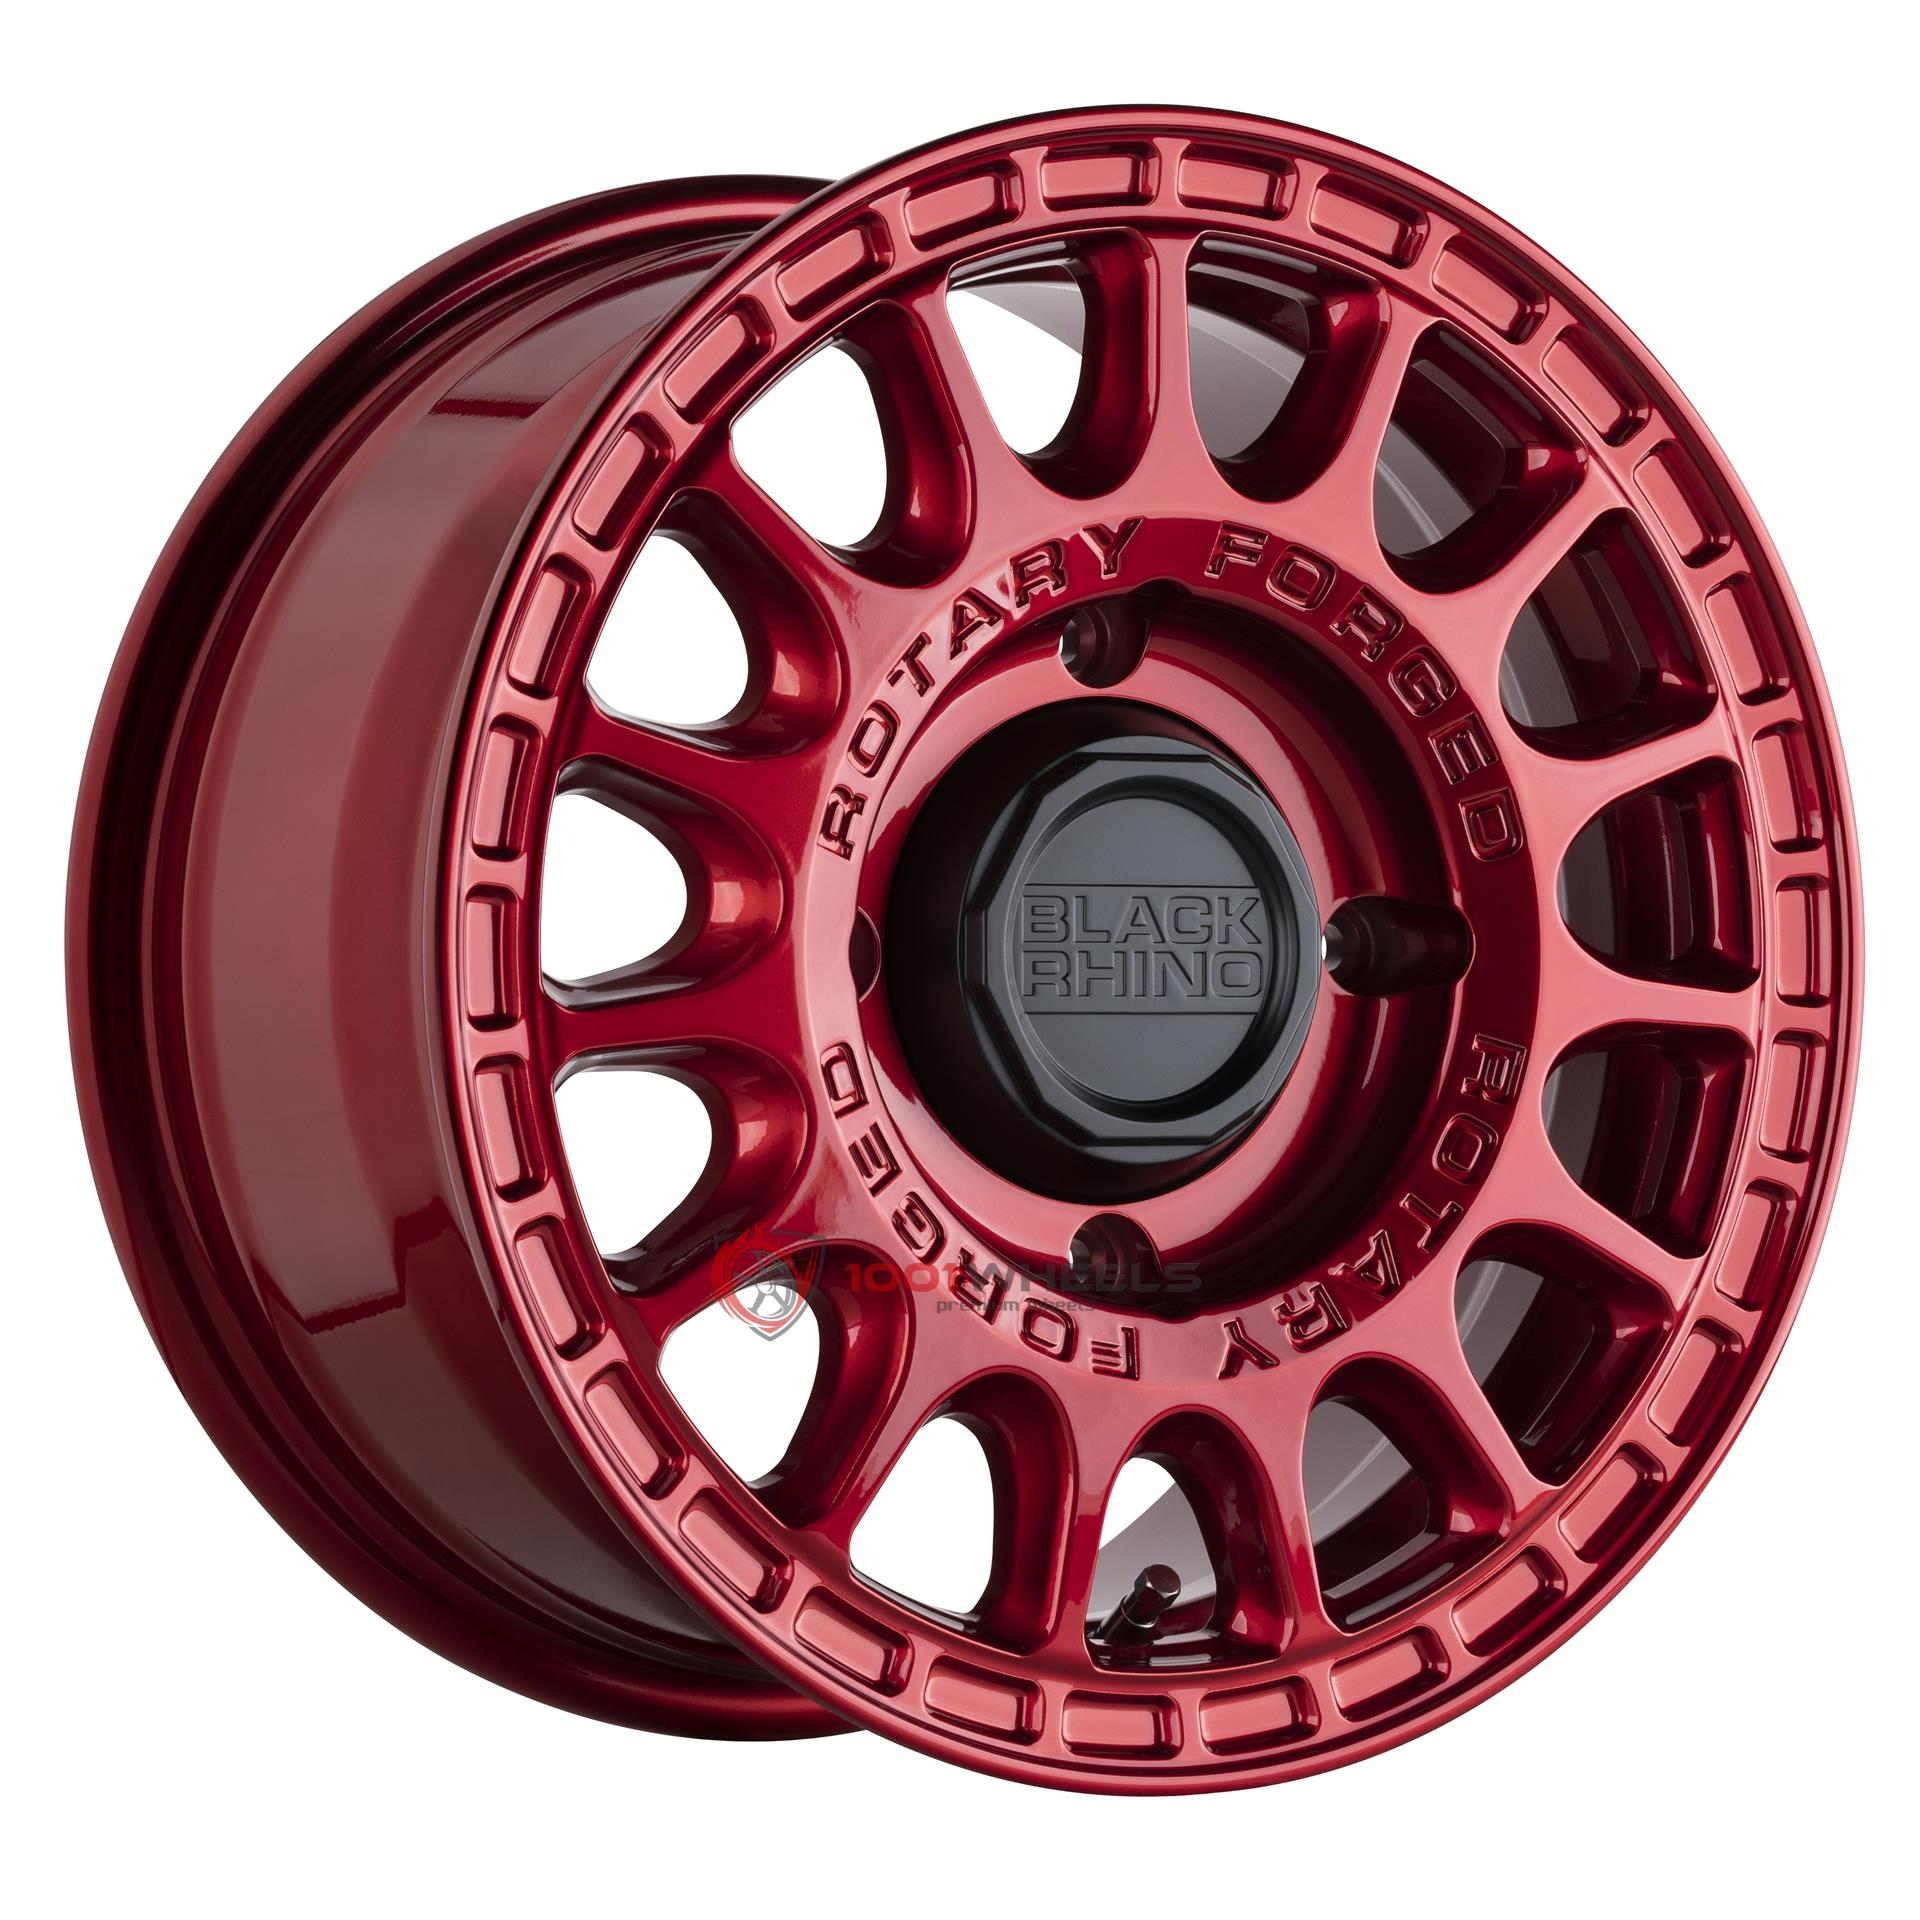 BLACK RHINO SANDSTORM candy-red